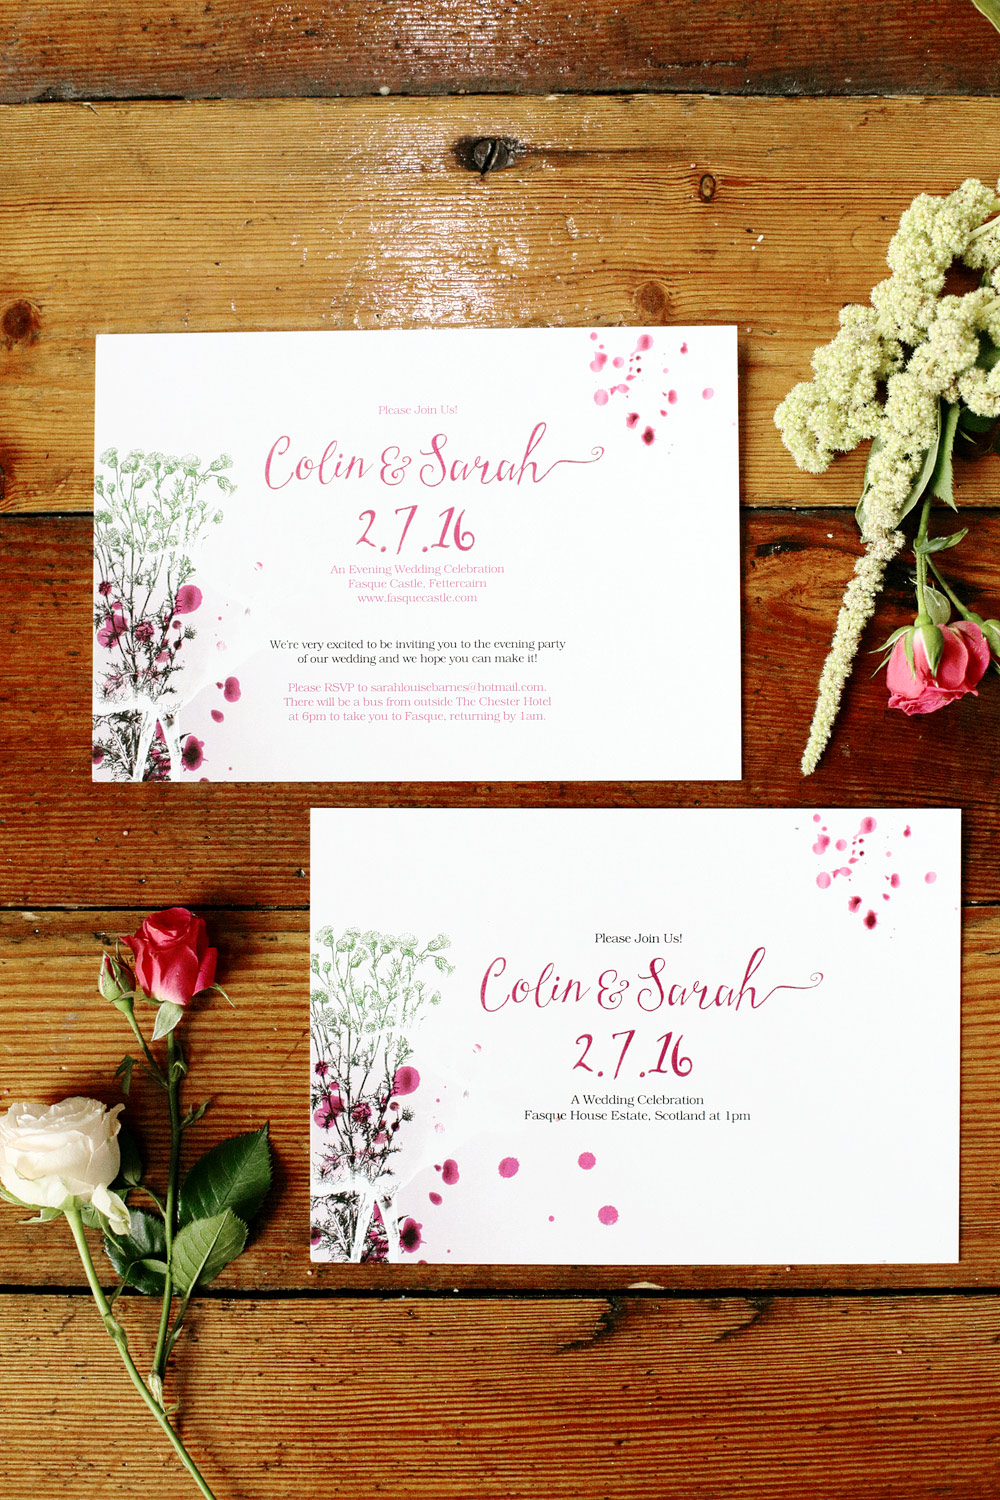 Fasque House colour wedding invitations